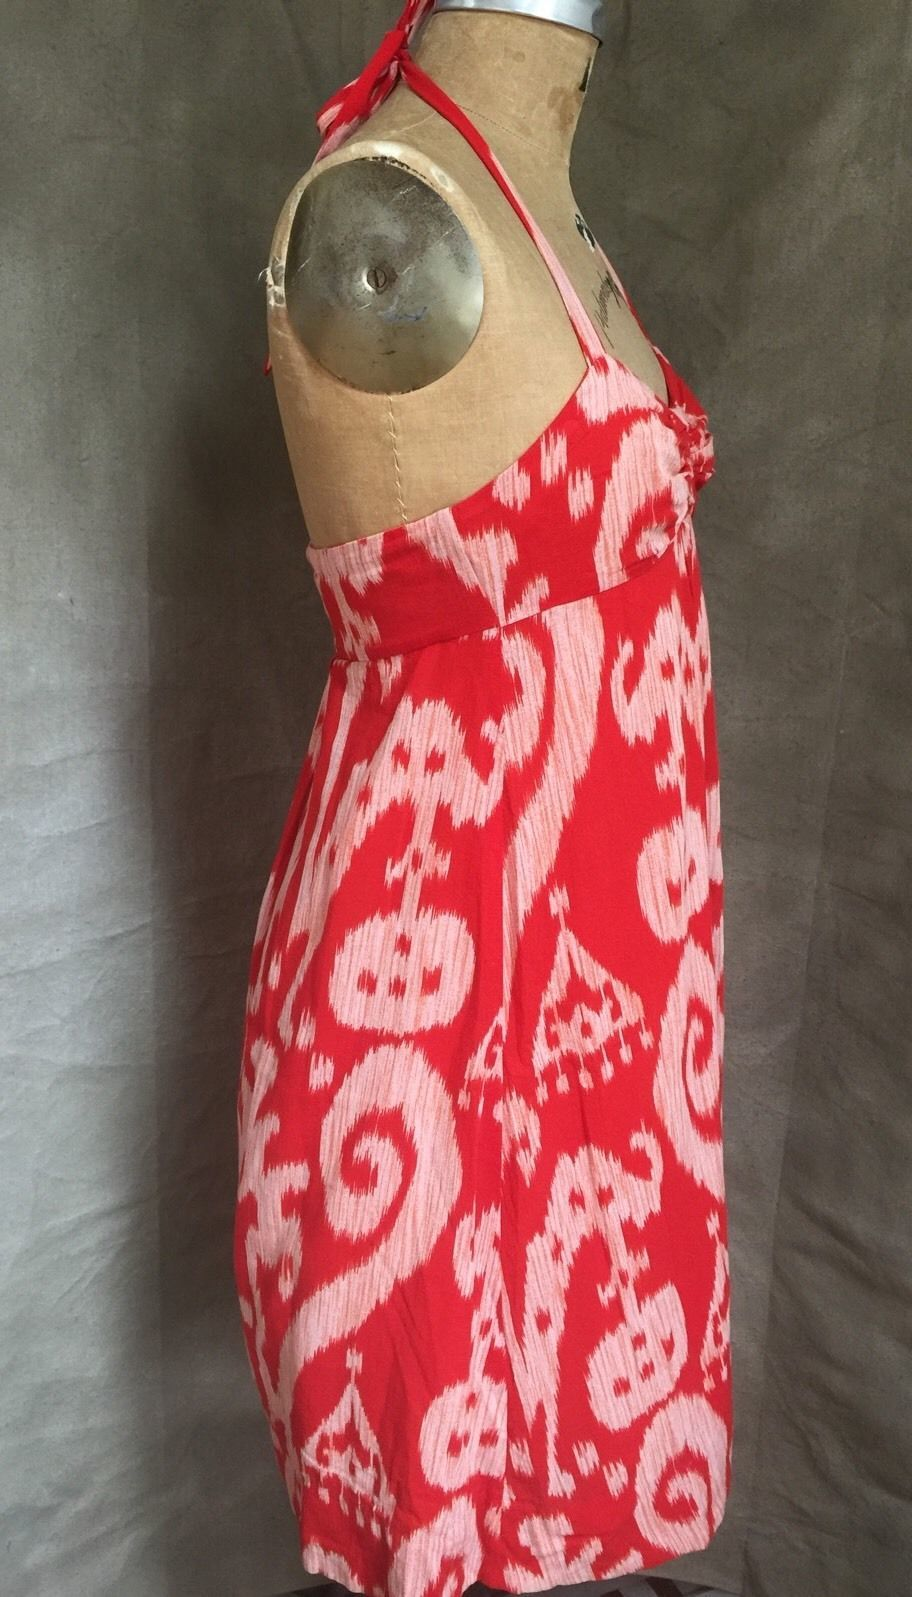 Anthropologie Summer IKAT HALTER DRESS 66170 MAEVE Womens 4 Red Cotton Lined